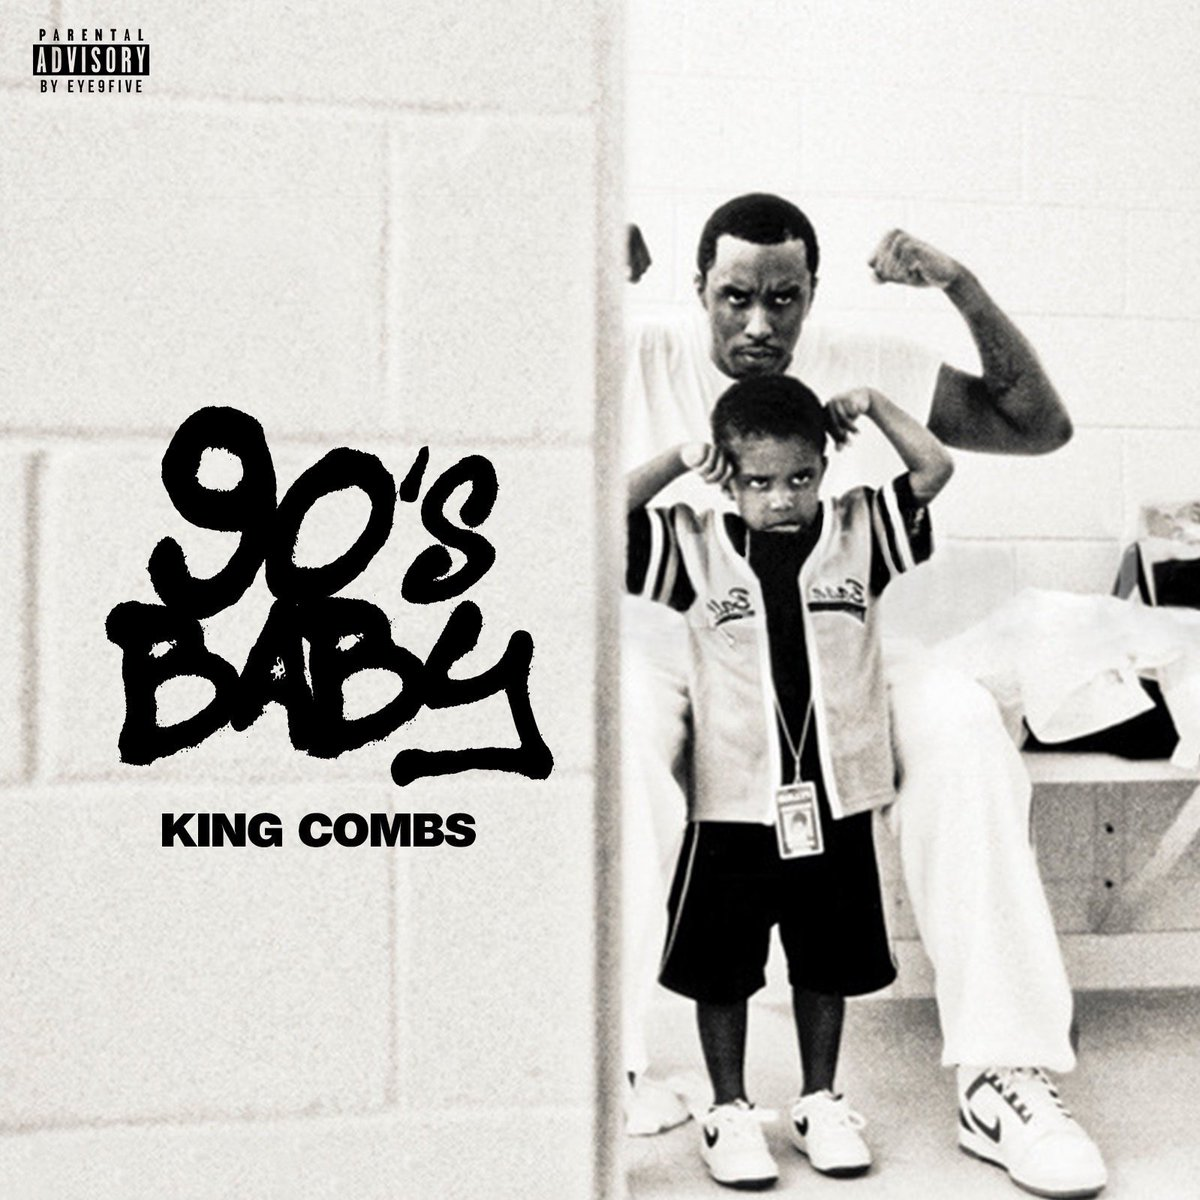 RT @VibeMagazine: .@Kingcombs makes his official debut with '90s Baby' mixtape https://t.co/IT2V4qozmx https://t.co/6BIAENAnpL